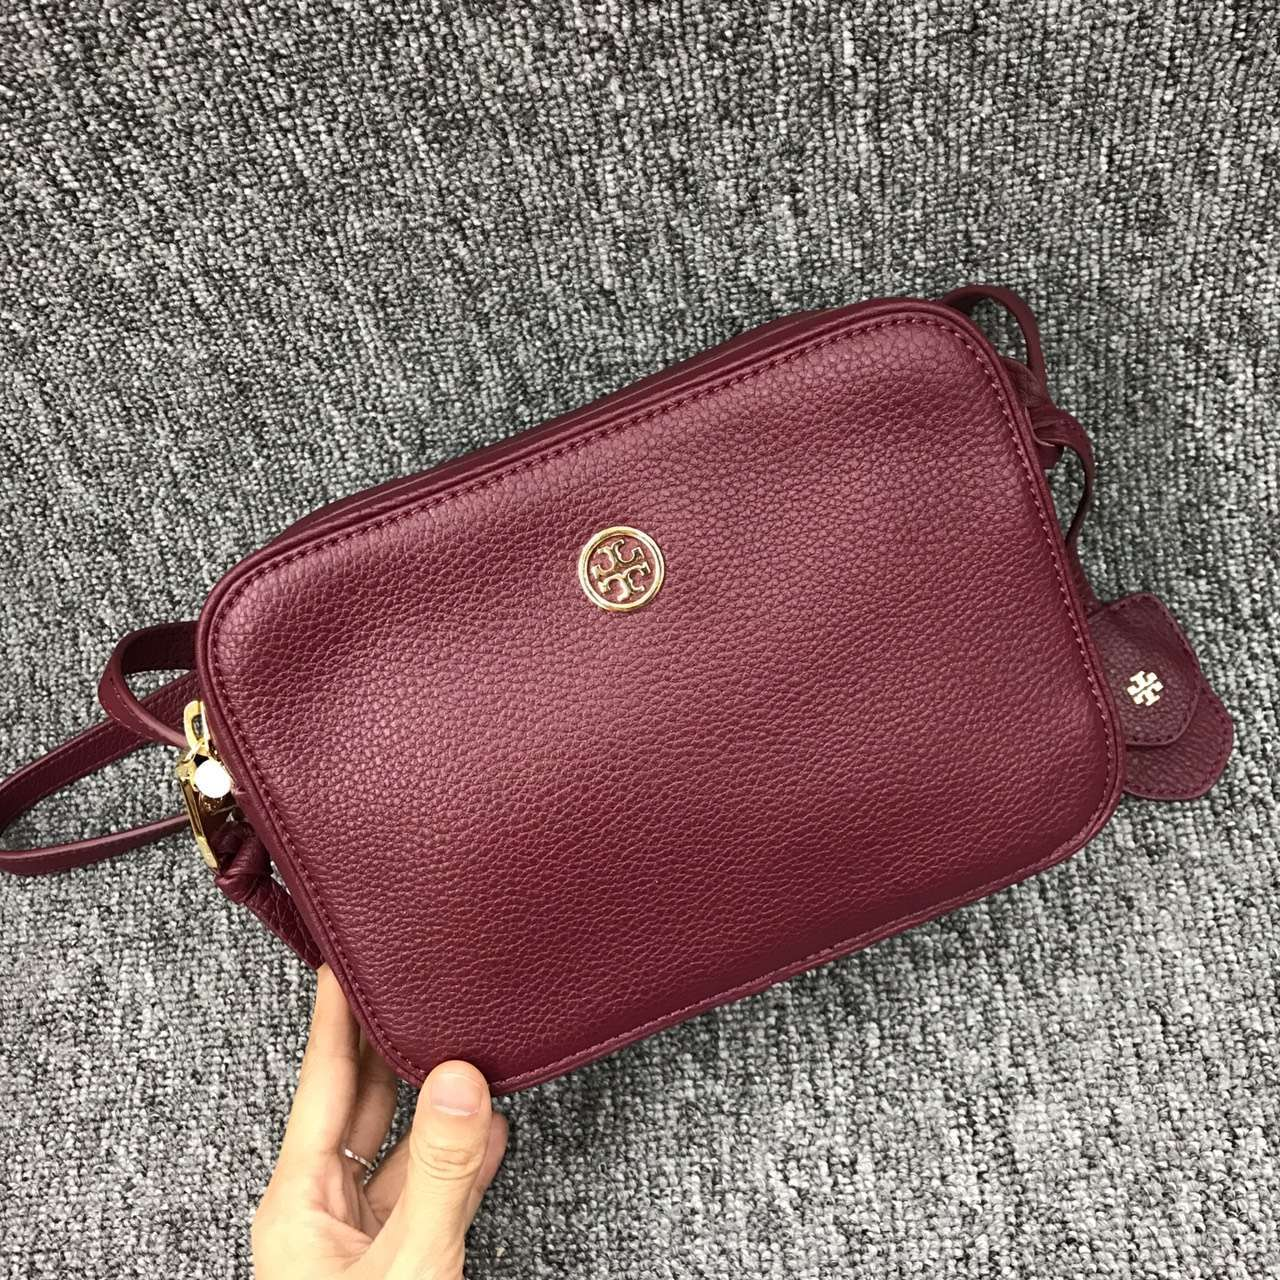 59133fb9e Mmexport1481794997547. Mmexport1481794997547. Previous. Tory Burch Robinson  Pebbled Leather Double-zip Cross-body Bag